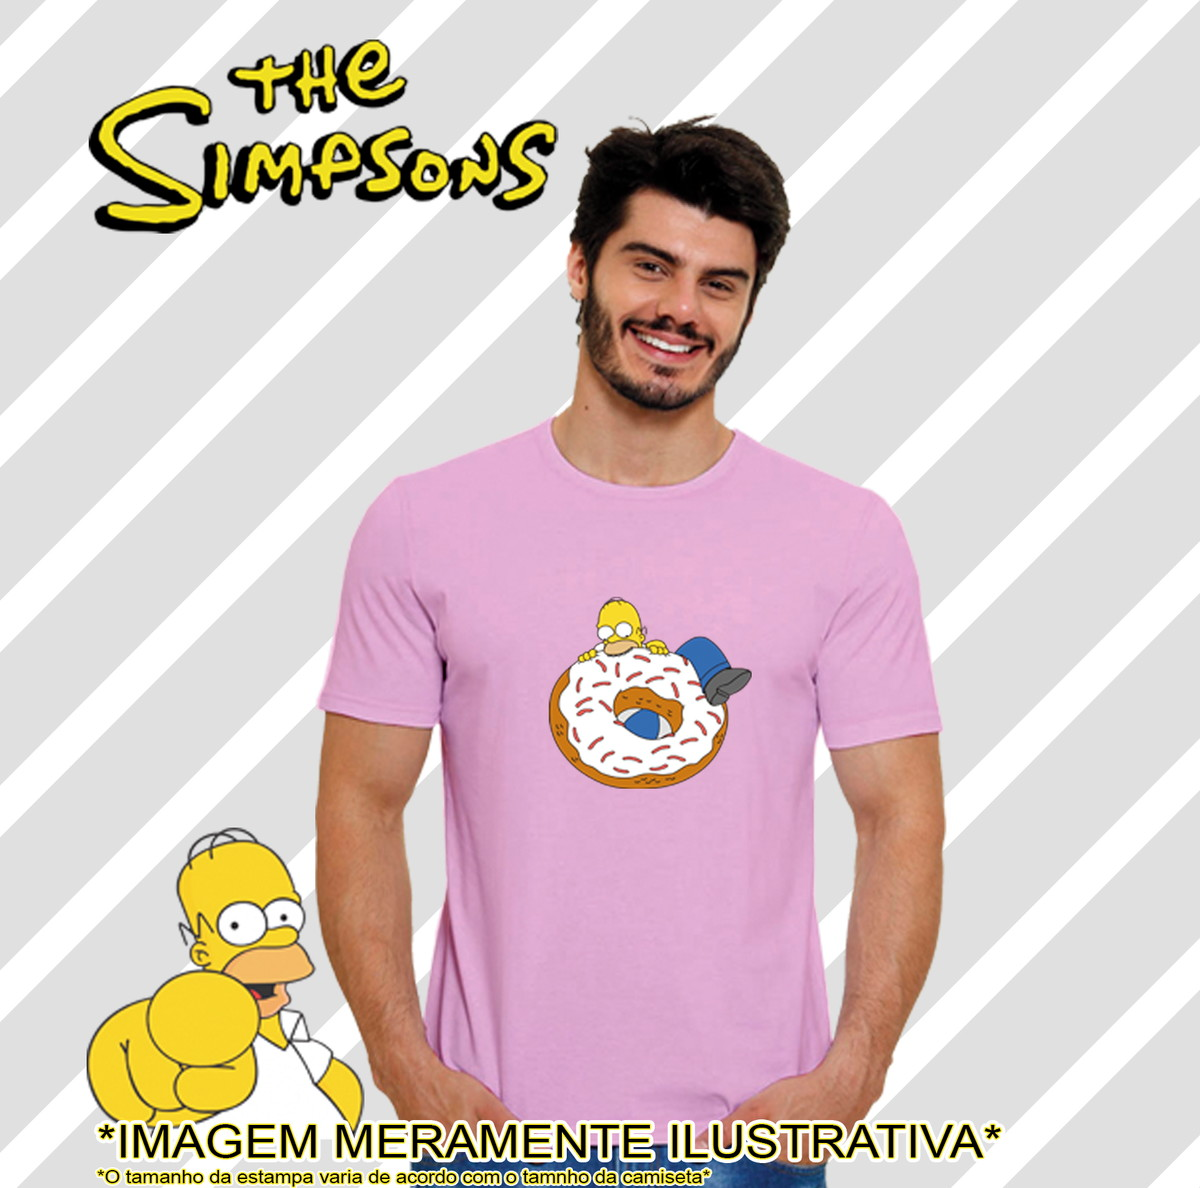 7eef5f38146ba Camiseta Série Os Simpsons Homer rosquinha no Elo7 | Your Style ...